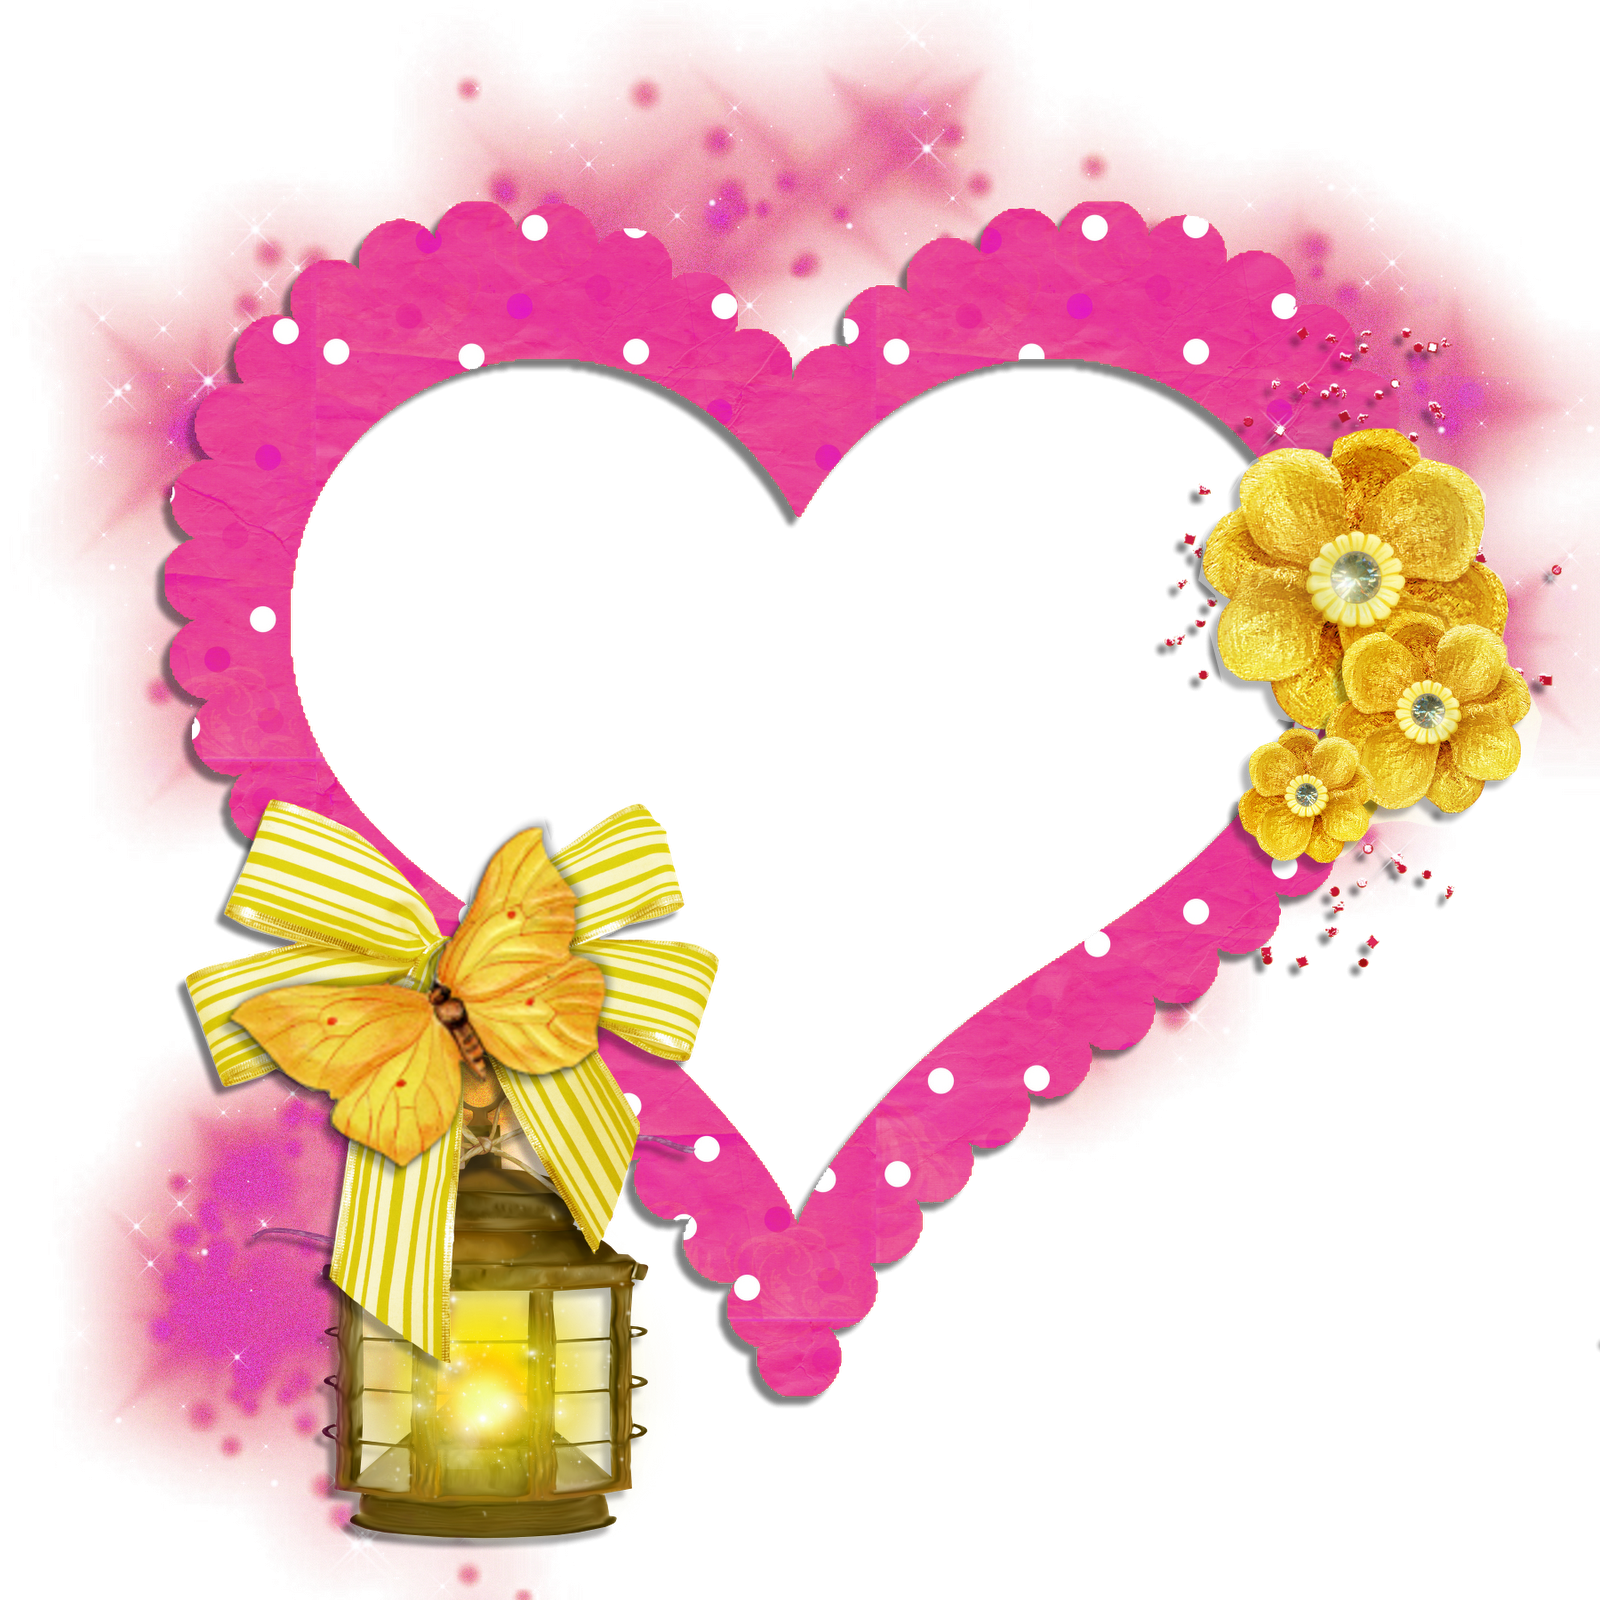 Heart butterfly clipart jpg transparent library Transparent Frame Pink Heart with Yellow Butterfly Flowers and Lamp ... jpg transparent library